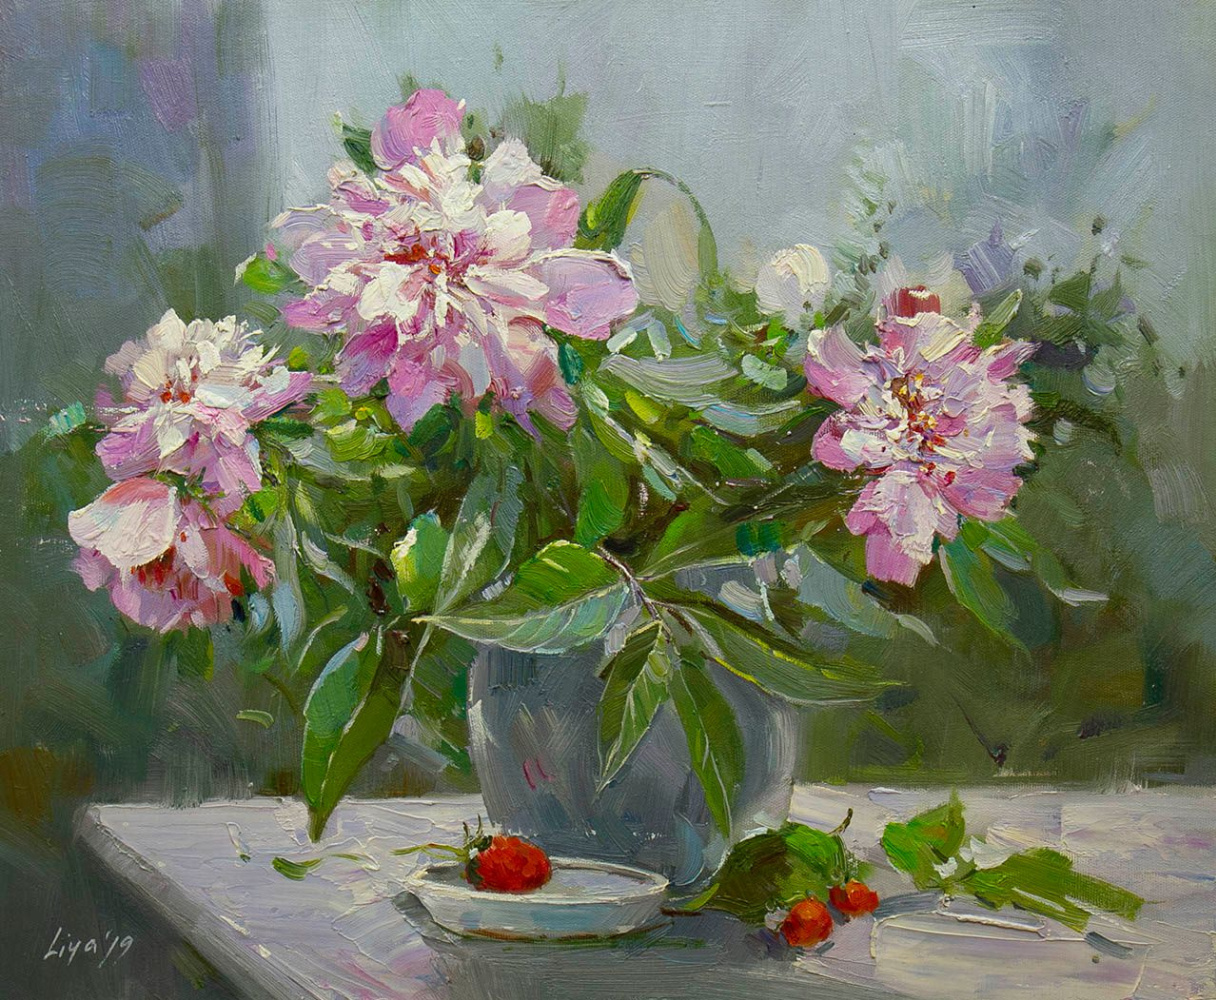 Savely Kamsky. A bouquet of garden peonies in a vase